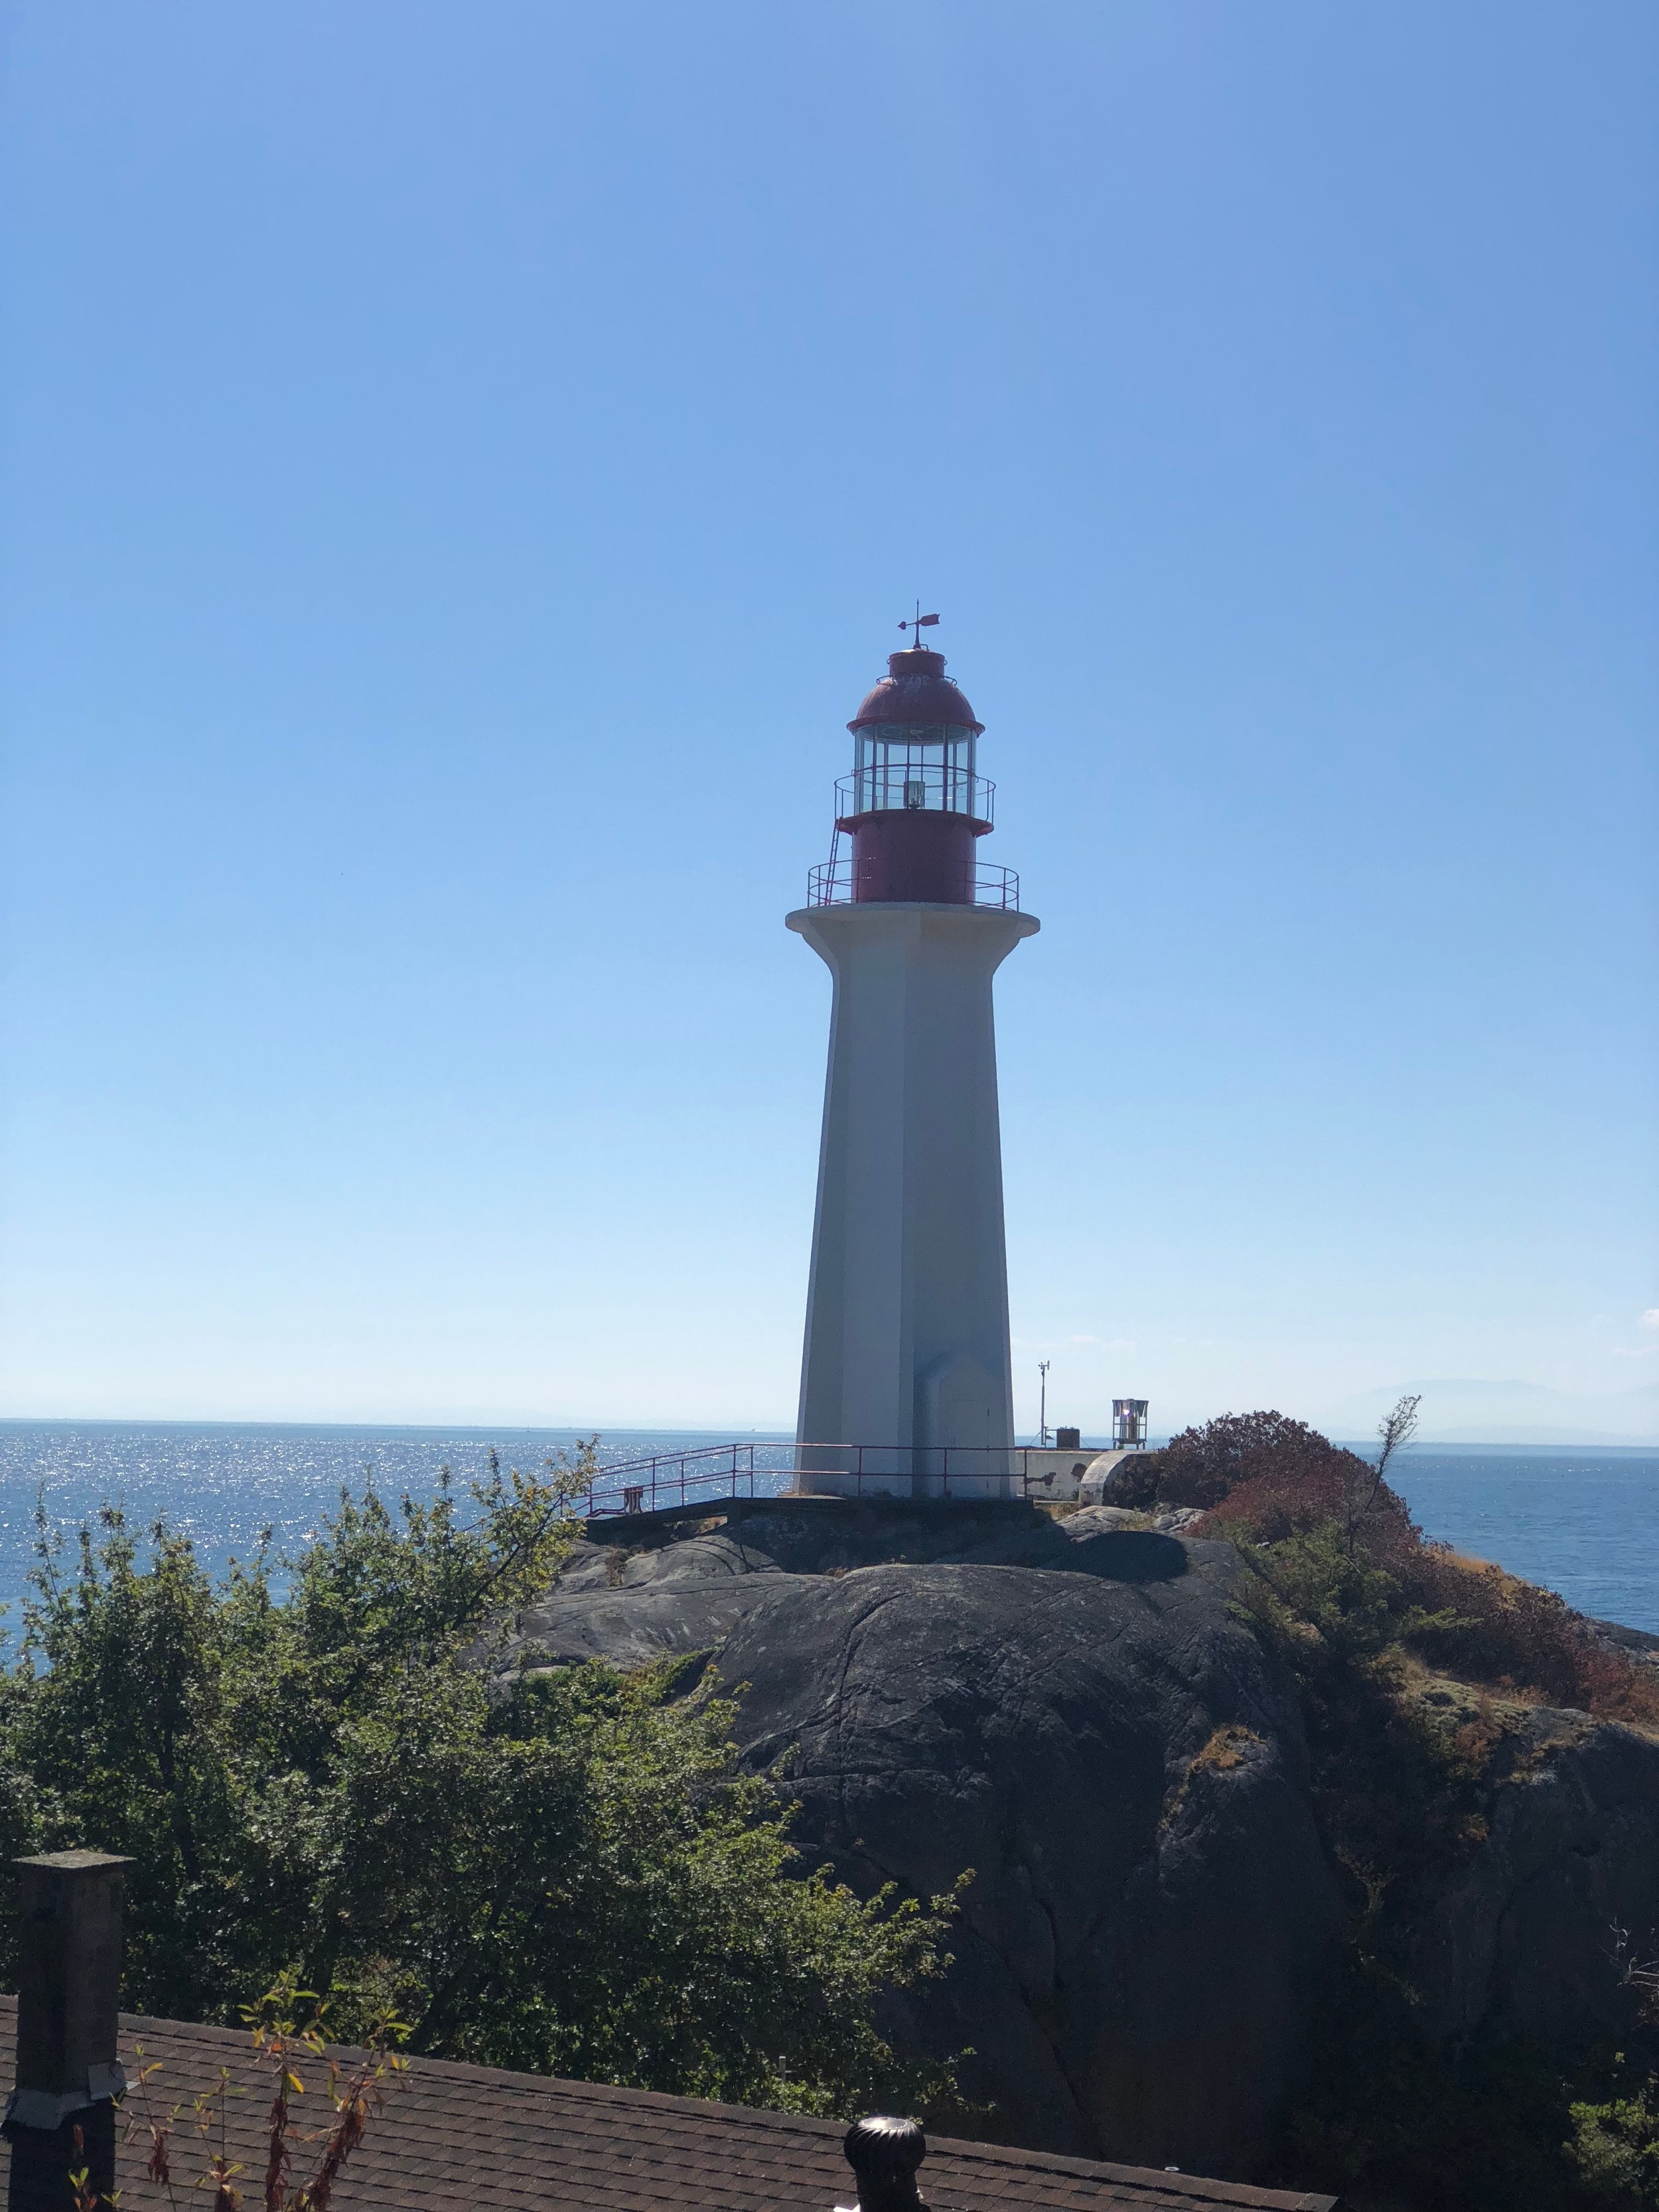 The lighthouse at Lighthouse Park